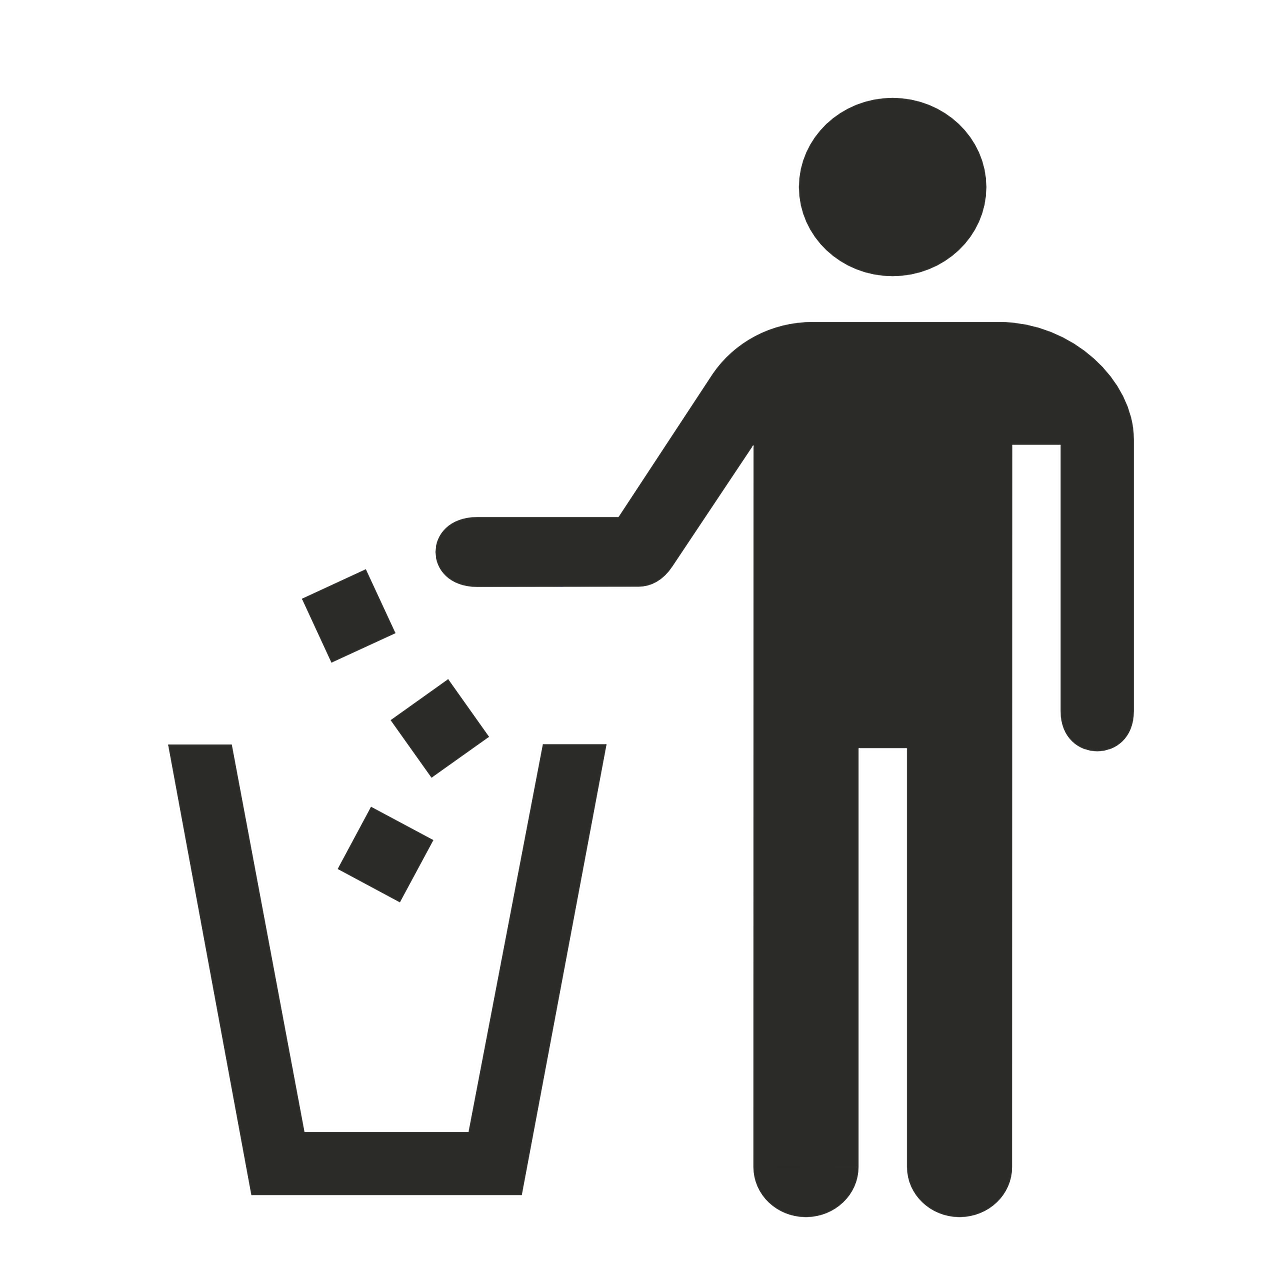 Pick the right trash. Environment clipart clean surroundings